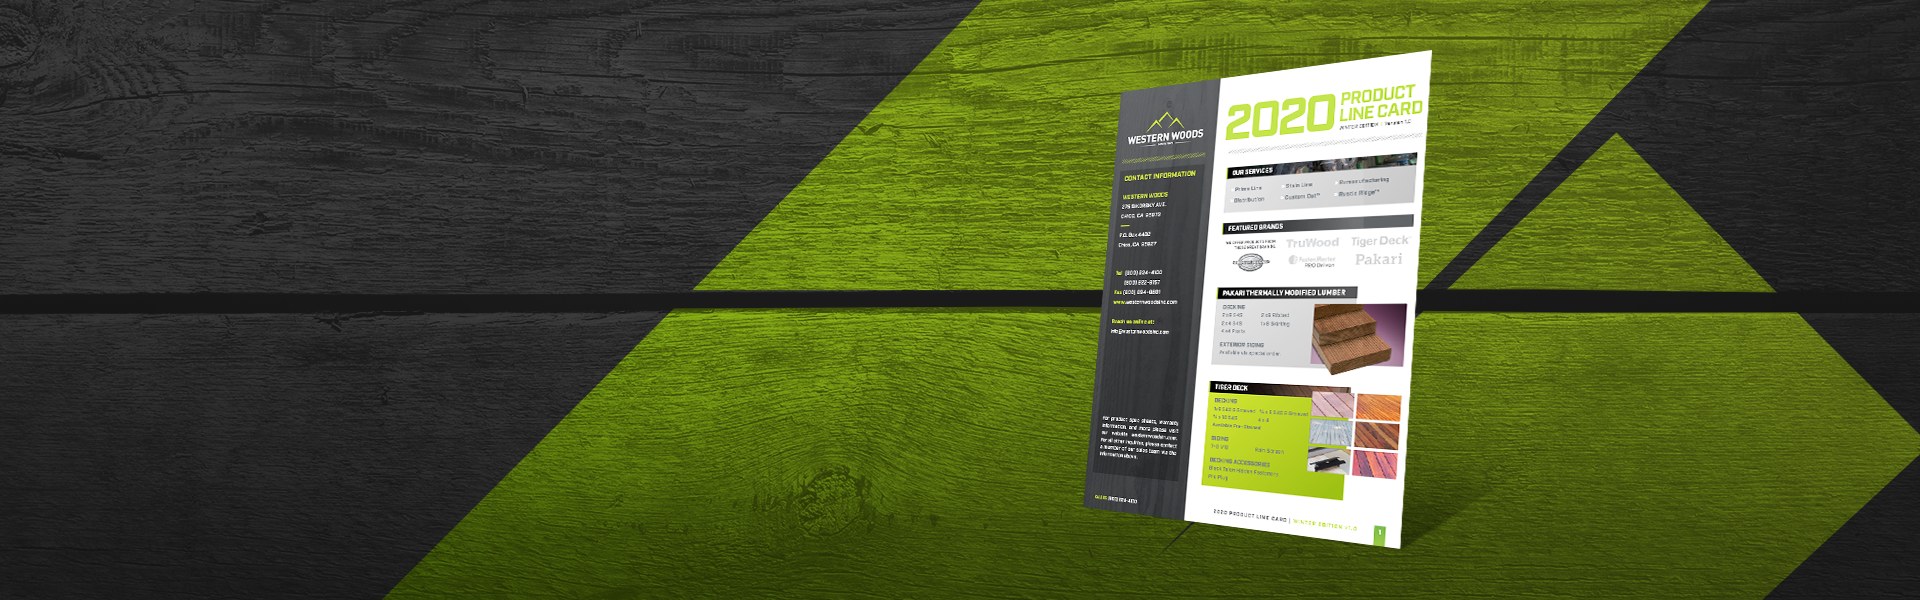 GET OUR 2020 PRODUCE LINE CARD!